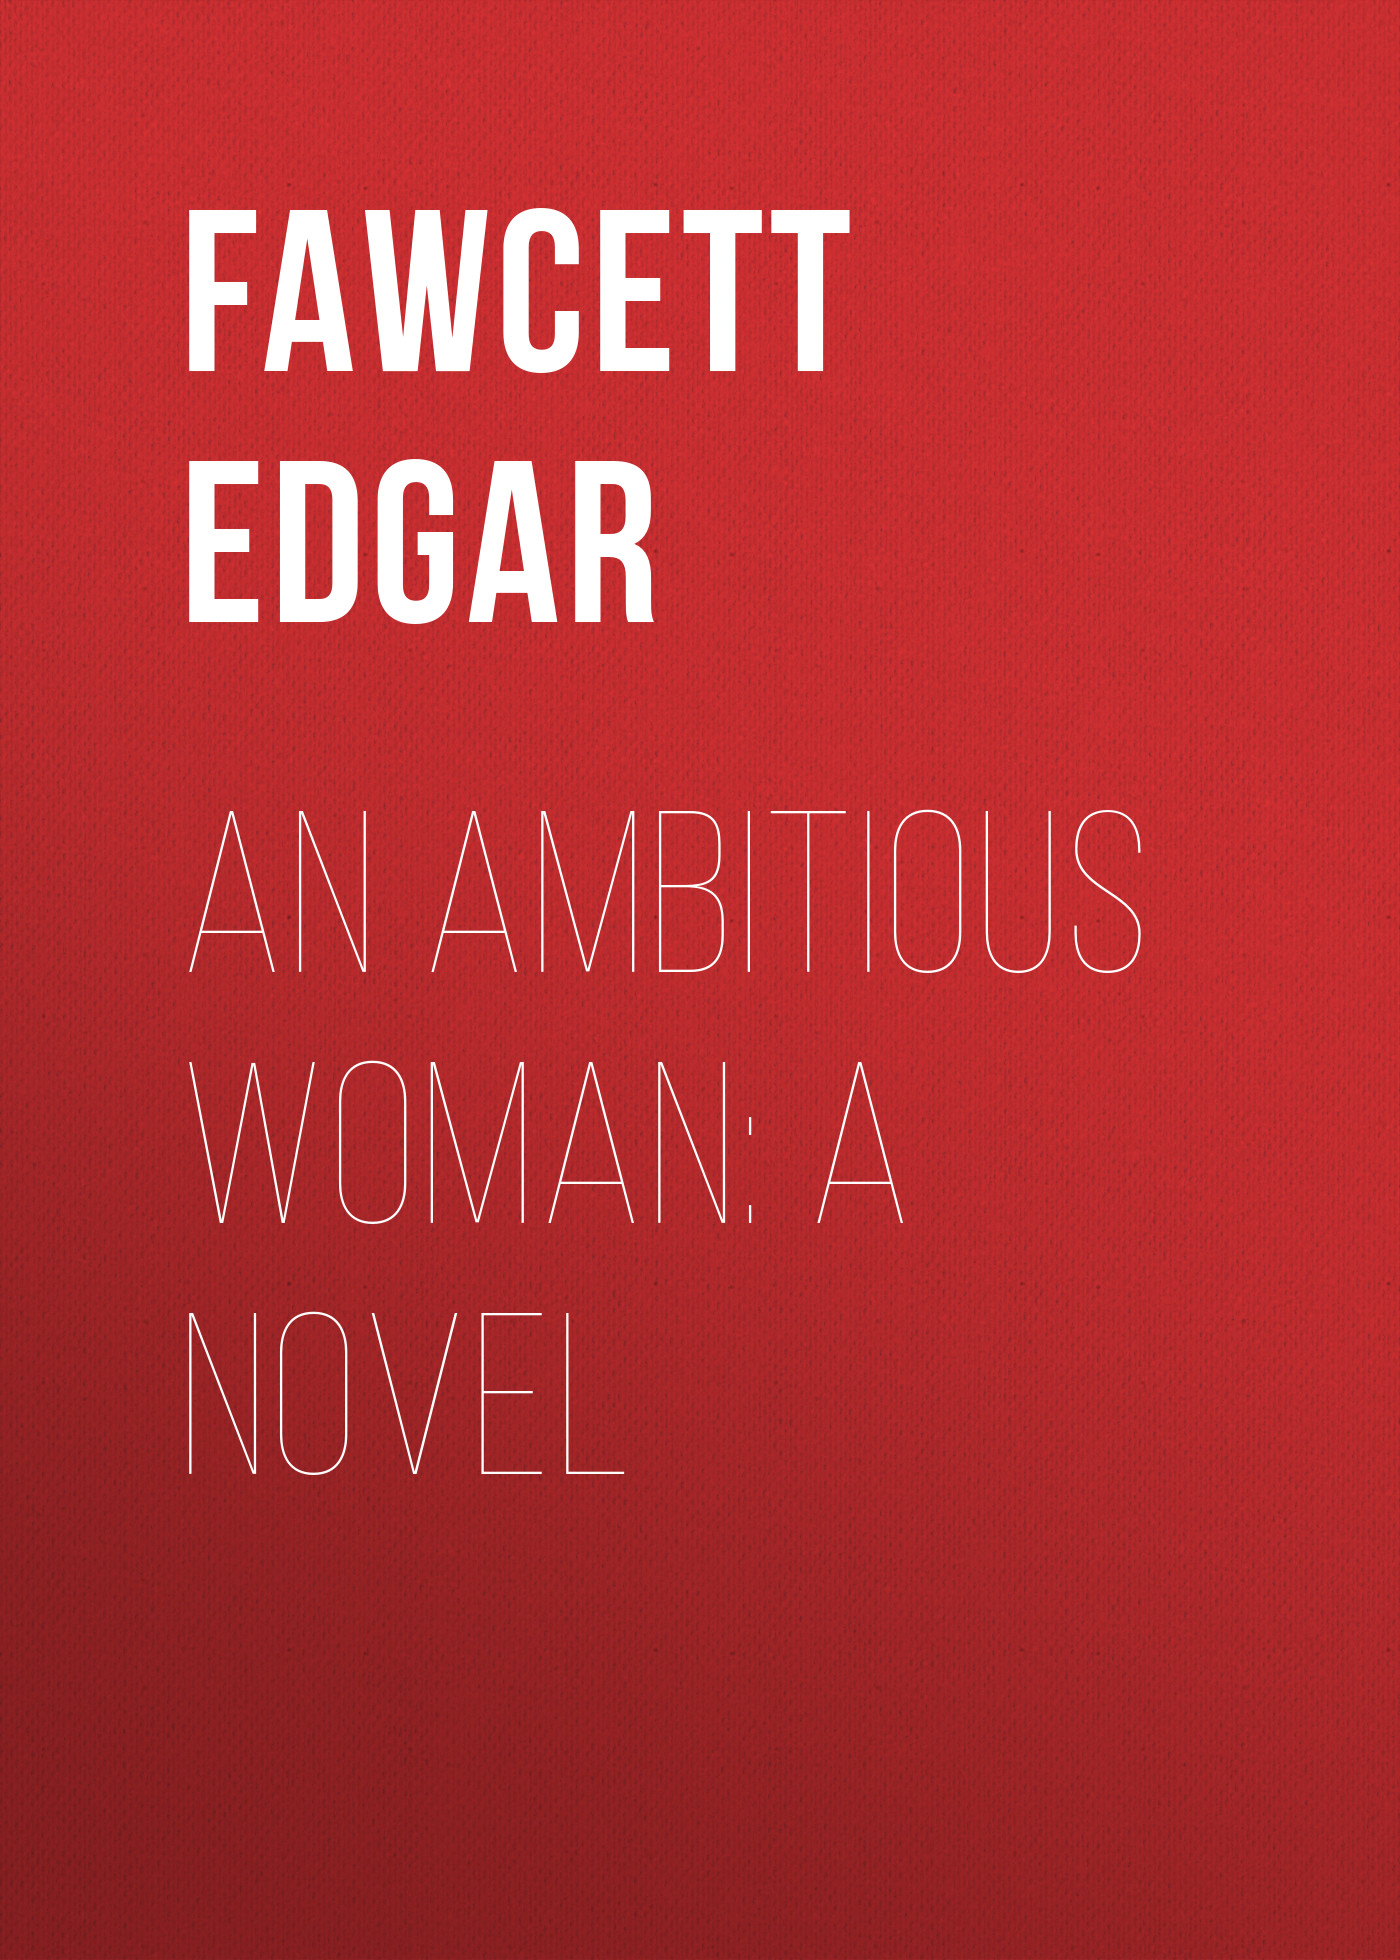 Fawcett Edgar An Ambitious Woman: A Novel w h 1871 1940 davies a weak woman a novel